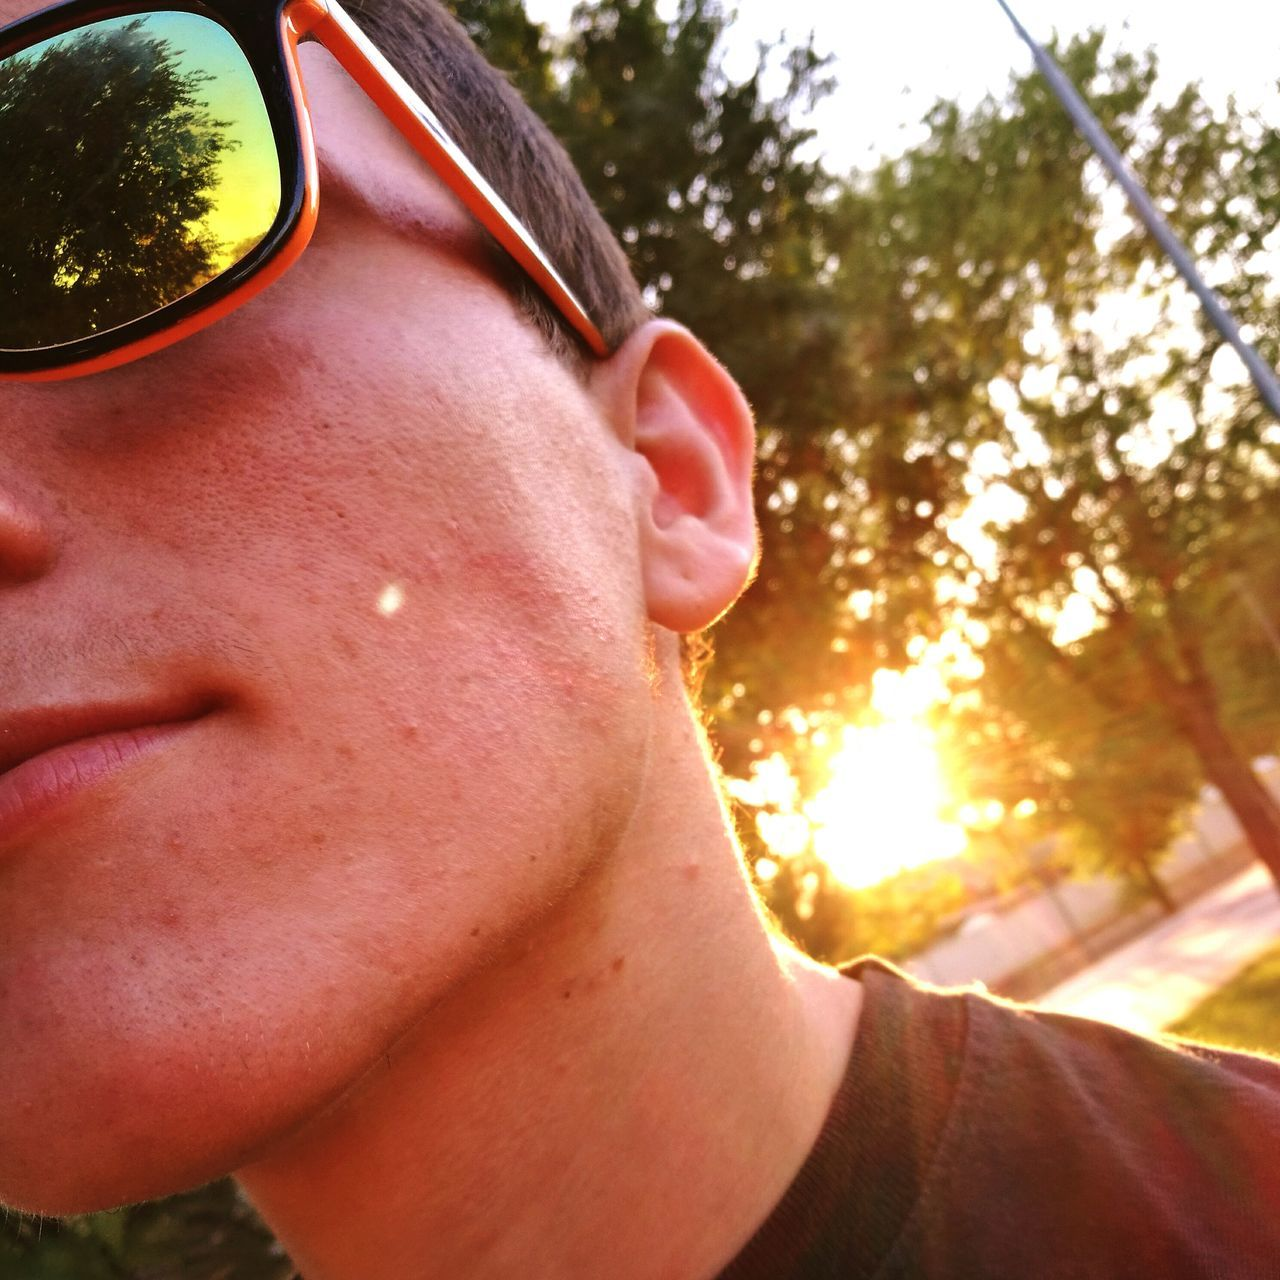 sunglasses, real people, tree, one person, focus on foreground, close-up, day, outdoors, lifestyles, headshot, young adult, people